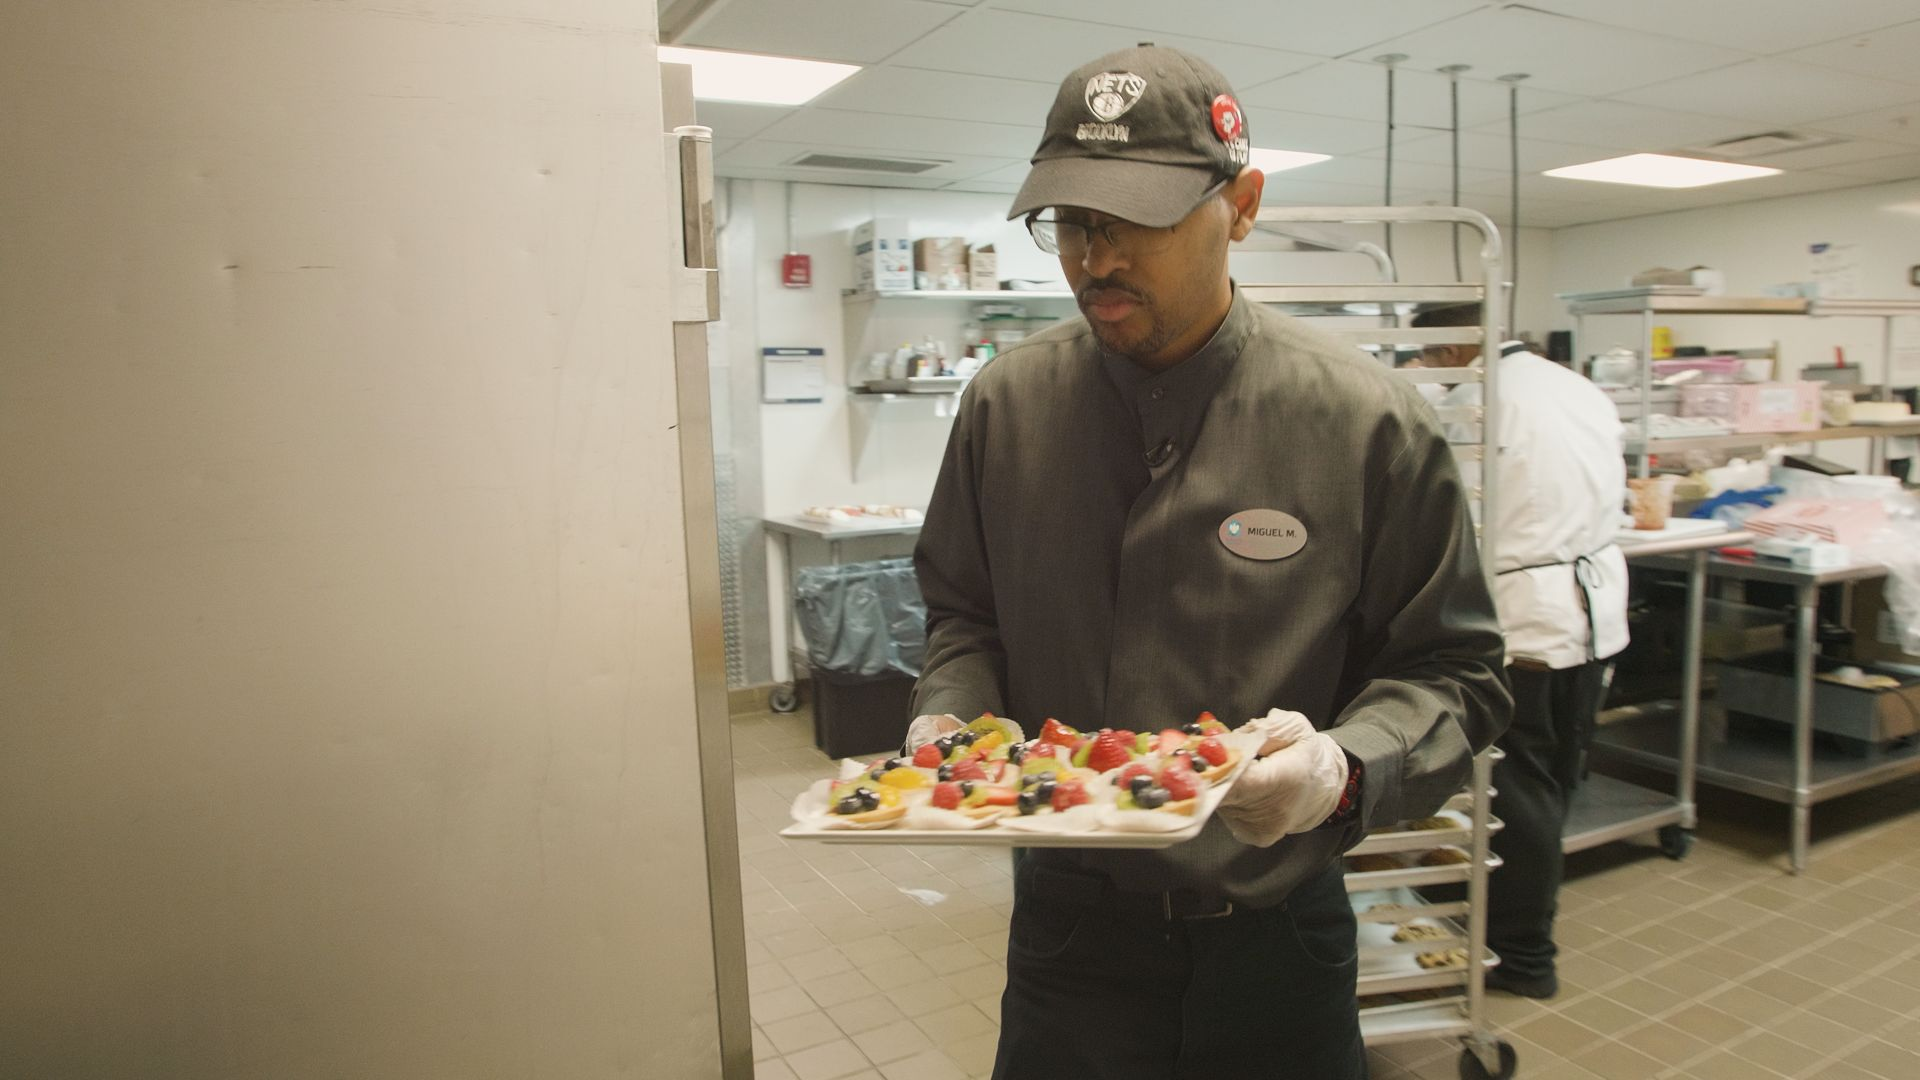 Mondesir busy working a shift at Barclays Center.